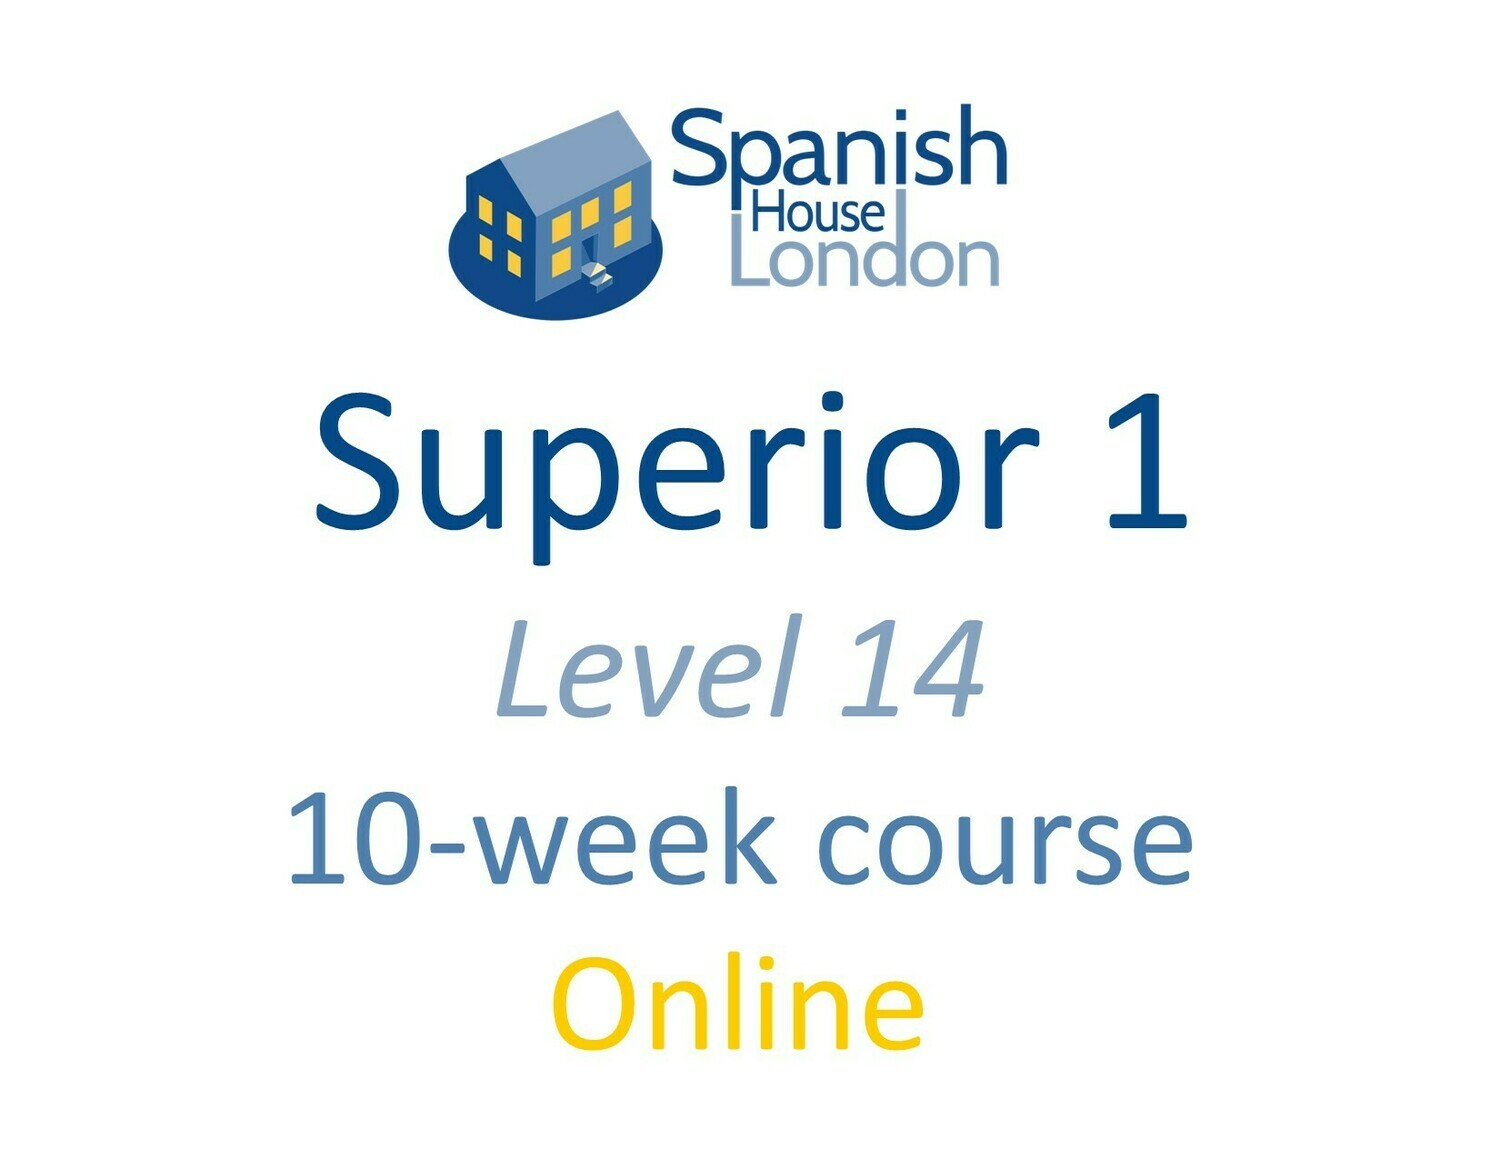 Superior 1 Course starting on 21st June at 6pm